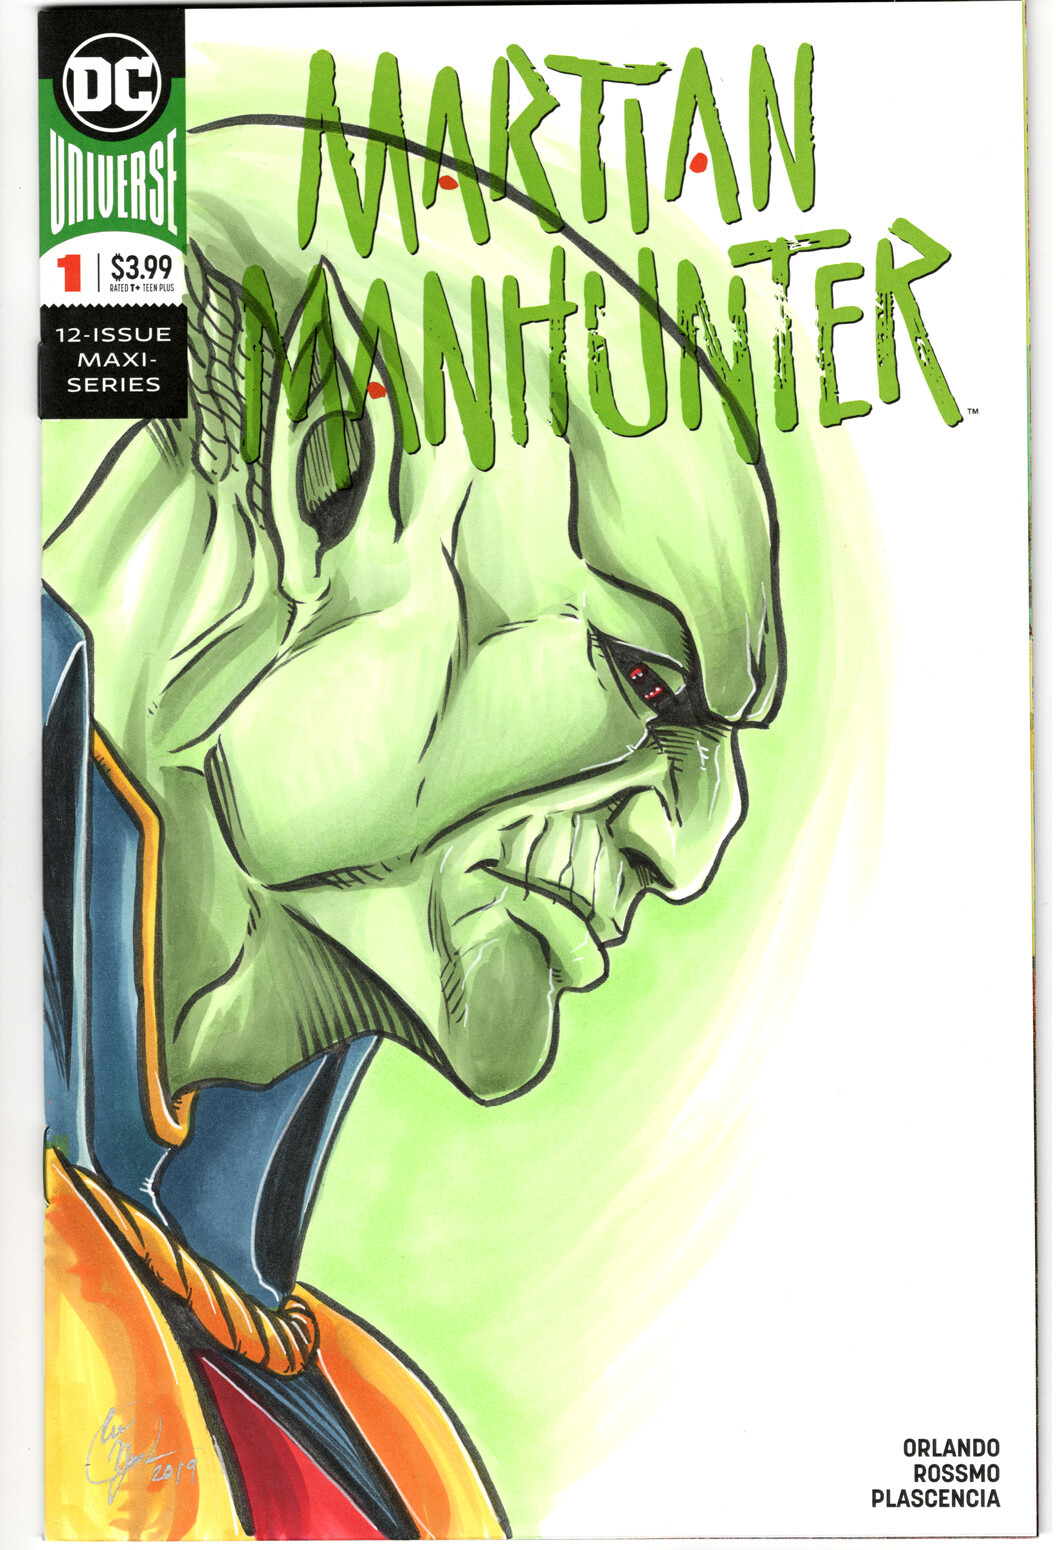 Loc nguyen 2019 04 17 martian manhunter